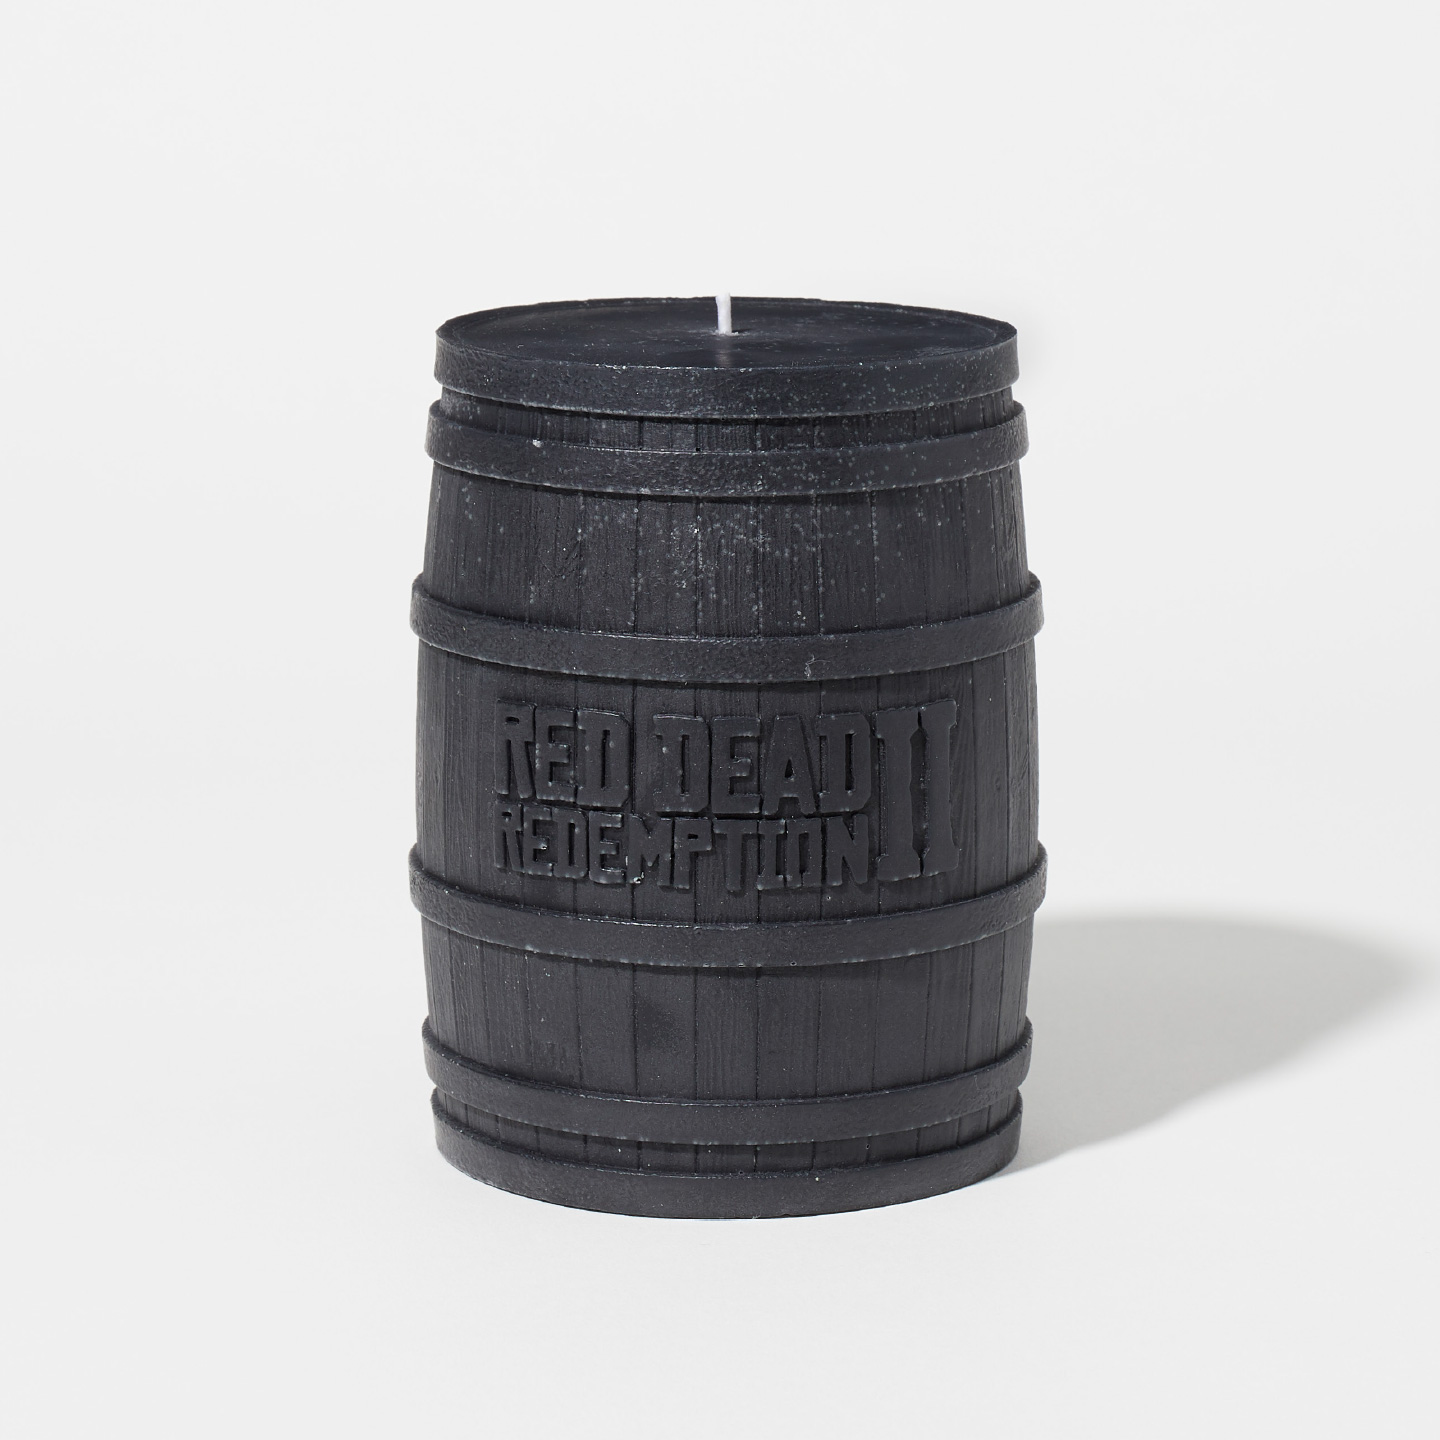 Red Dead Redemption 2 Barrel Candle by Joya